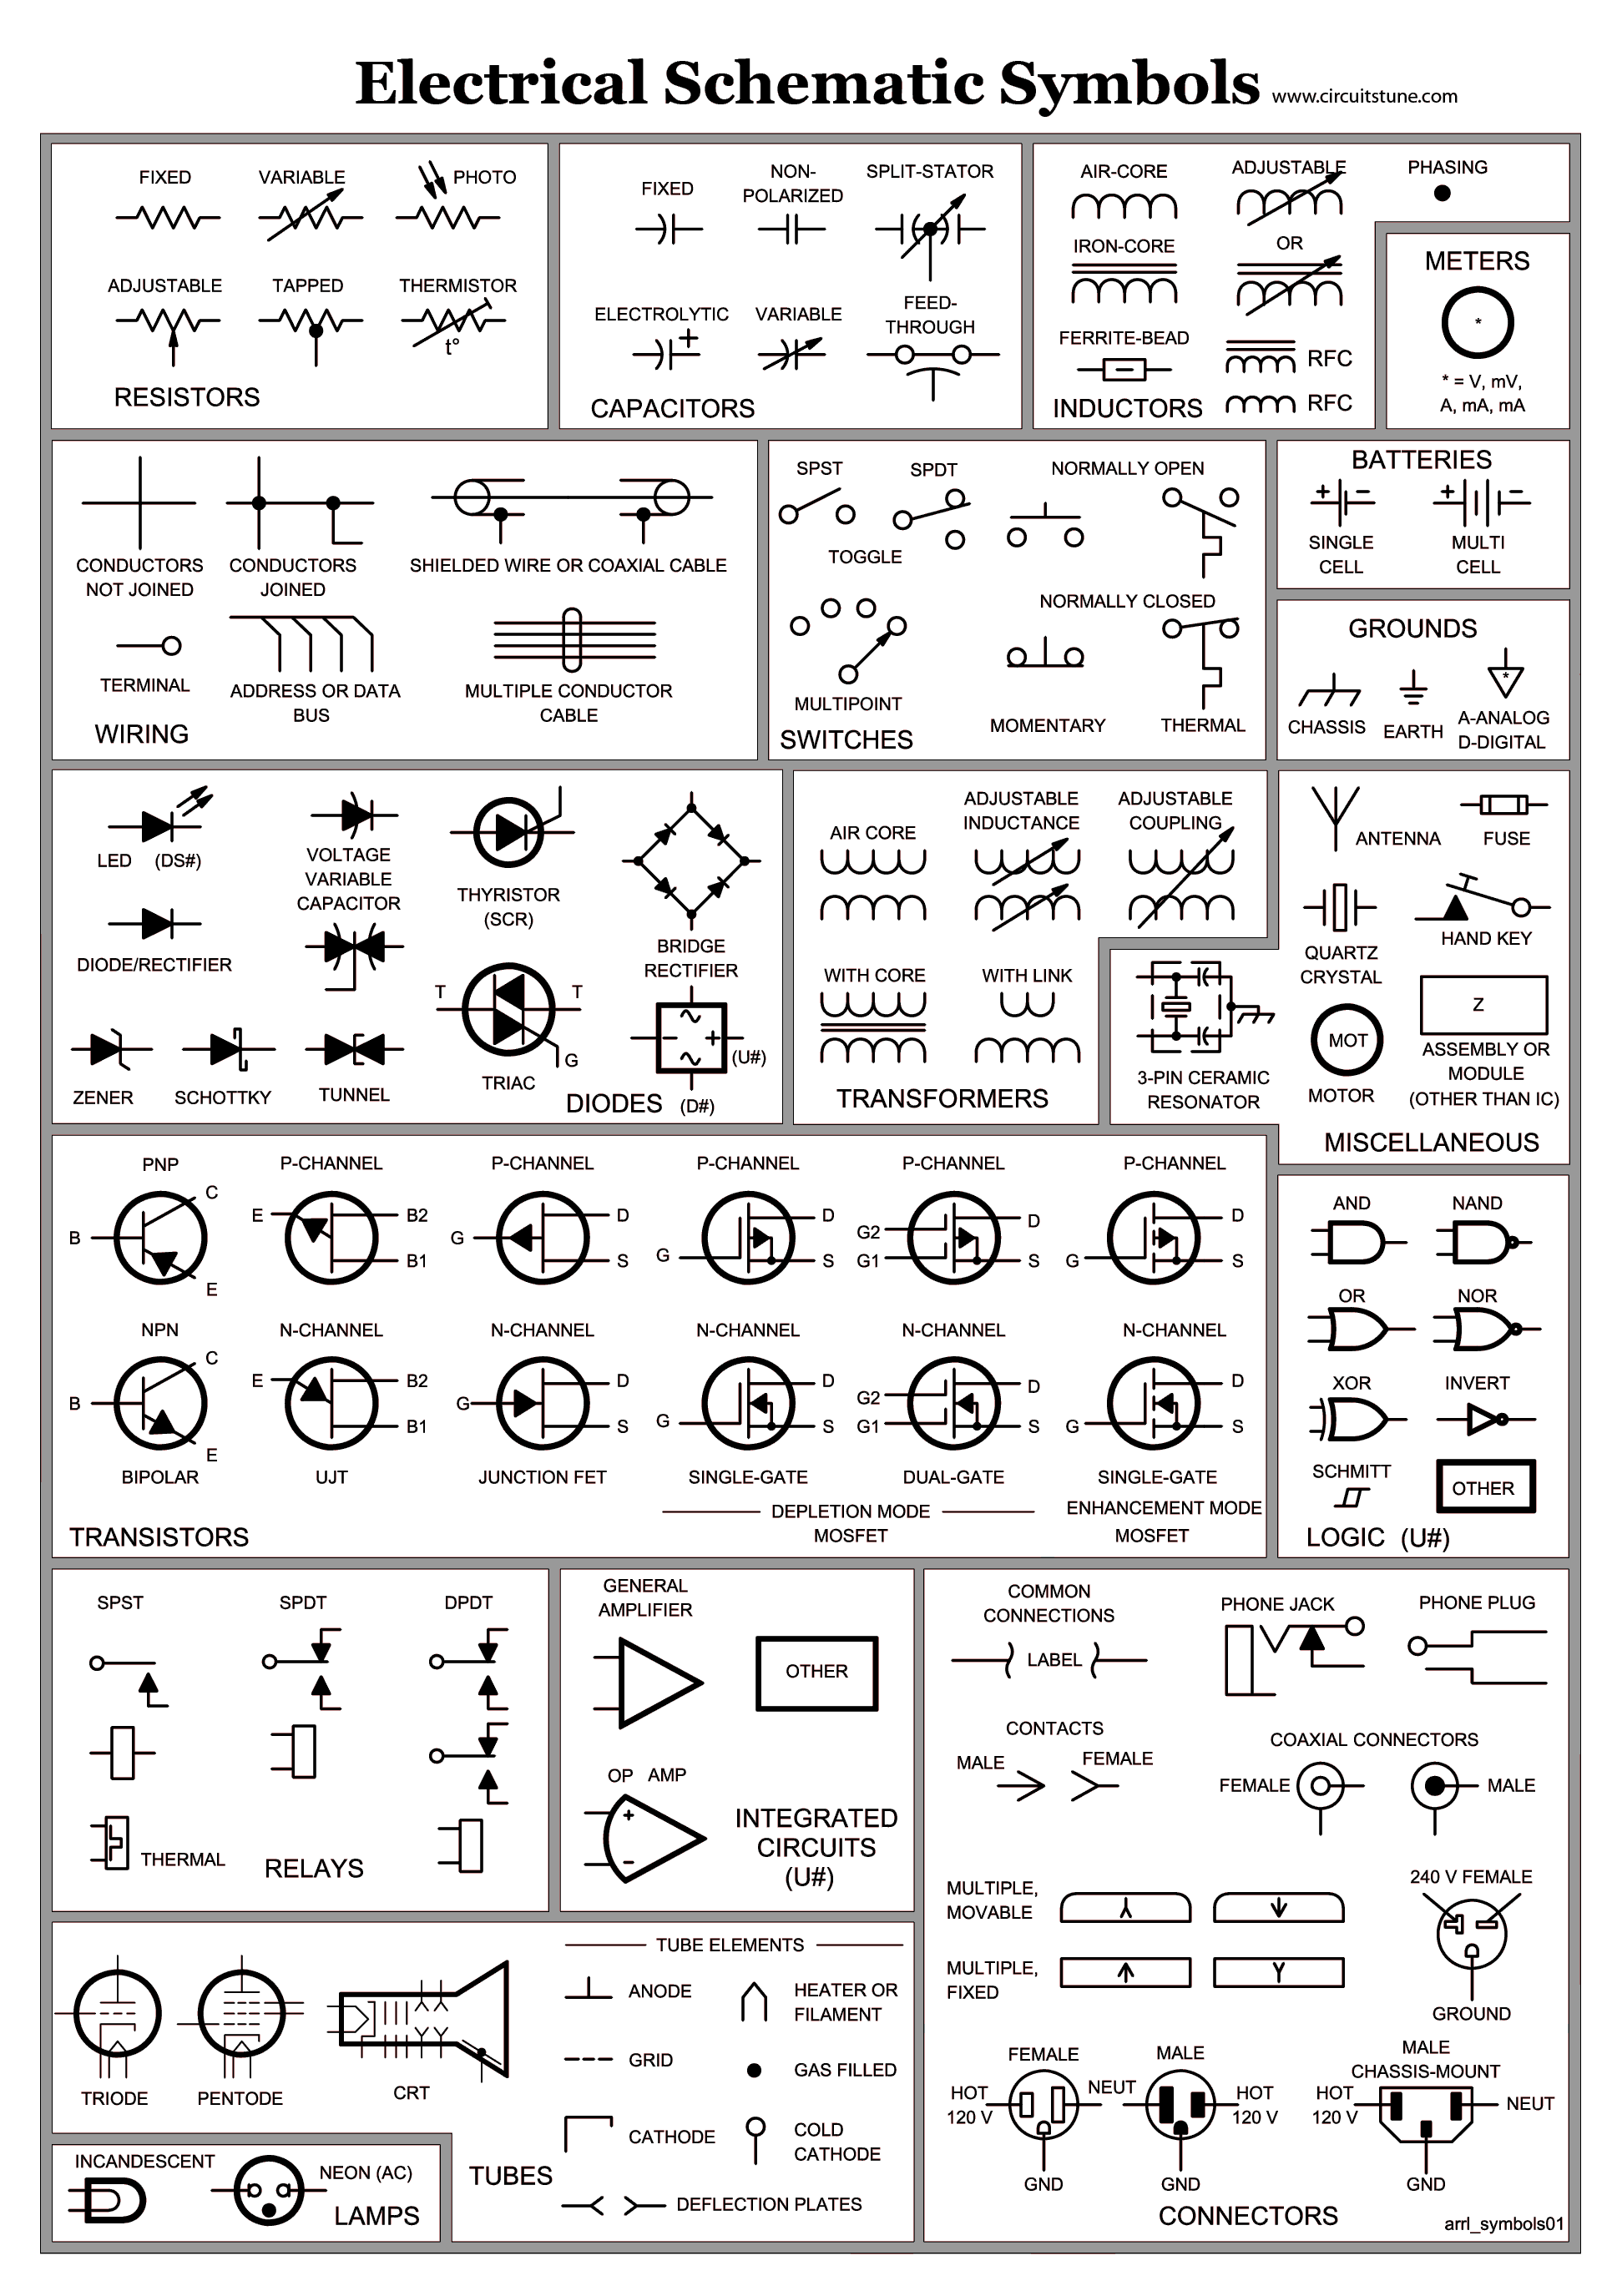 electrical schematic symbols wire diagram symbols automotive wiring rh pinterest com electrical wiring diagram symbols in autocad electric wiring diagrams symbols